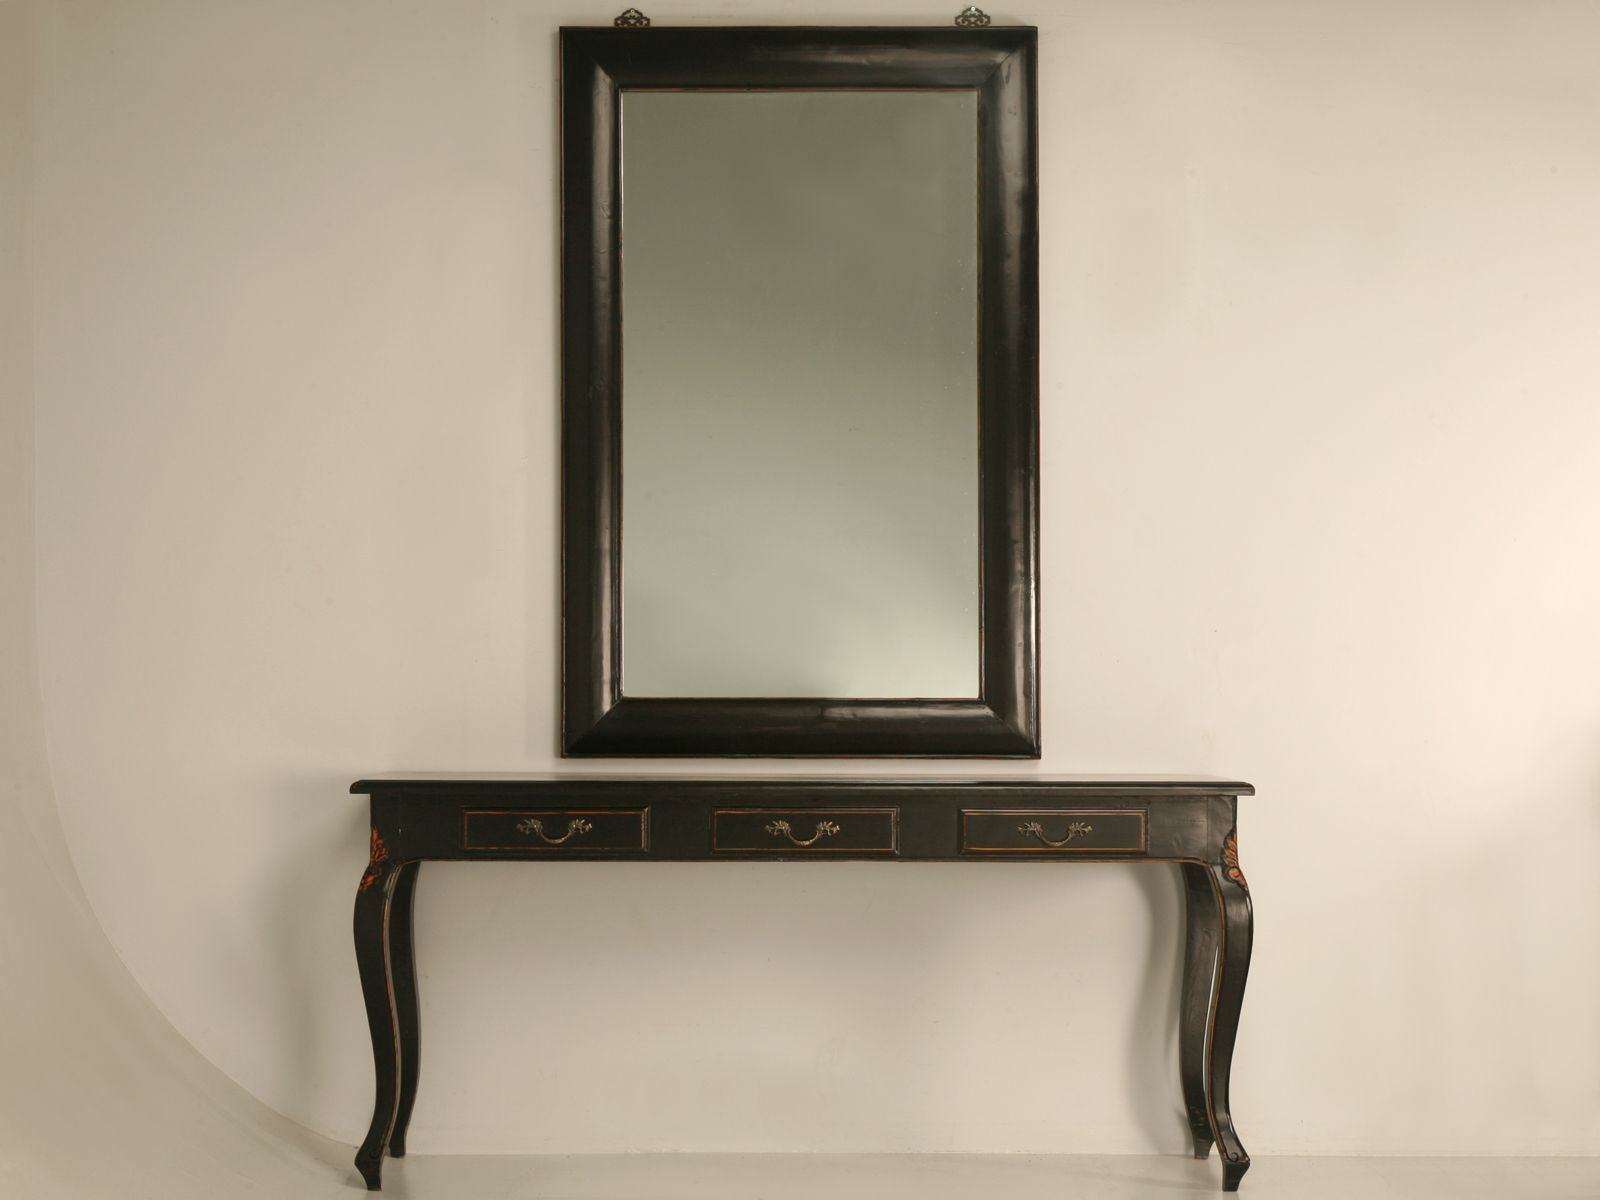 Entrance Tables Furniture productwiki: black lacquered console table and mirror sold